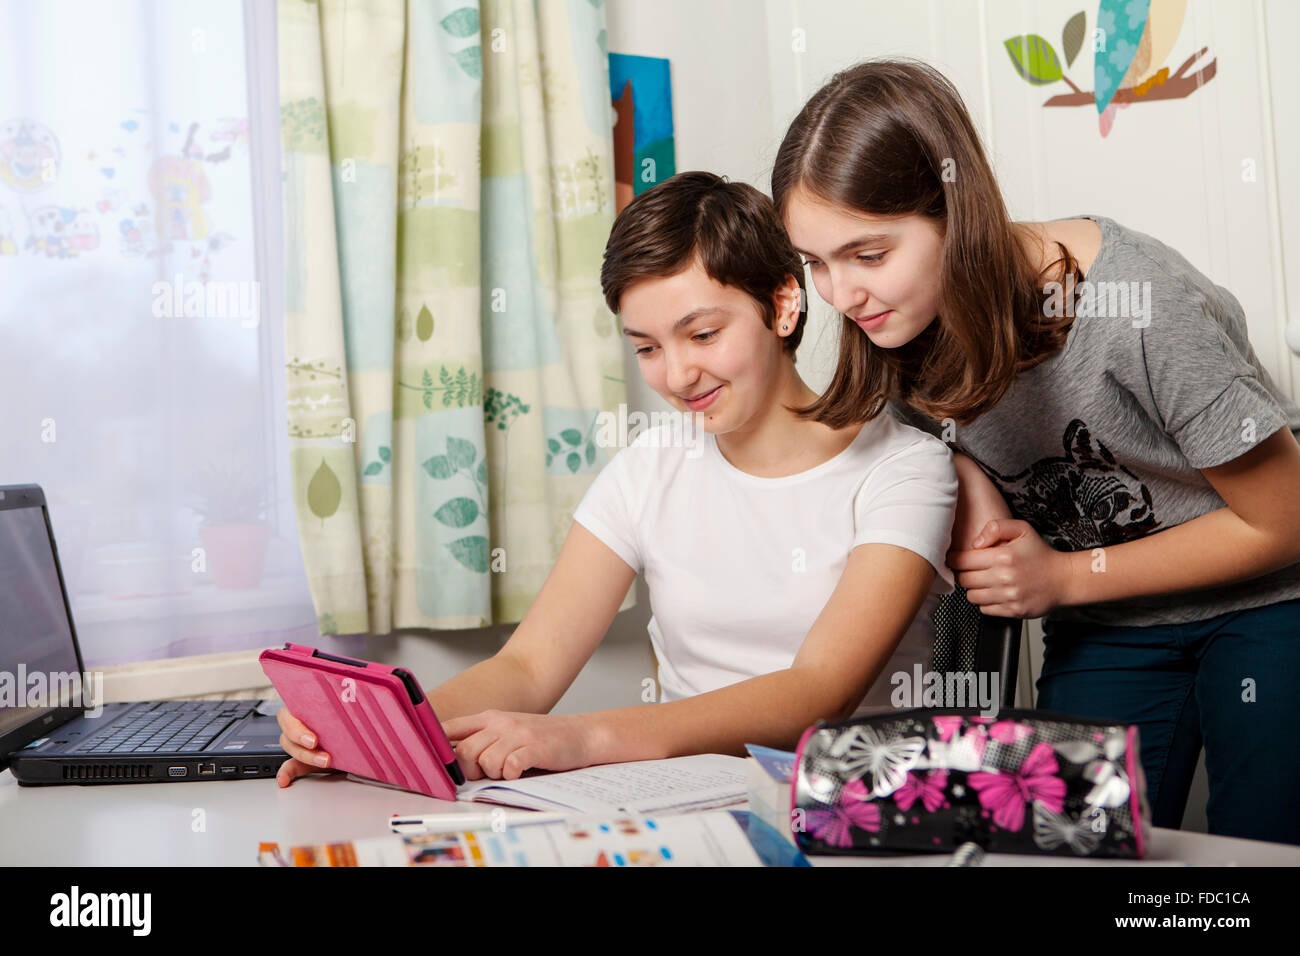 Deux sœurs adolescentes à la maison avec tablet Photo Stock